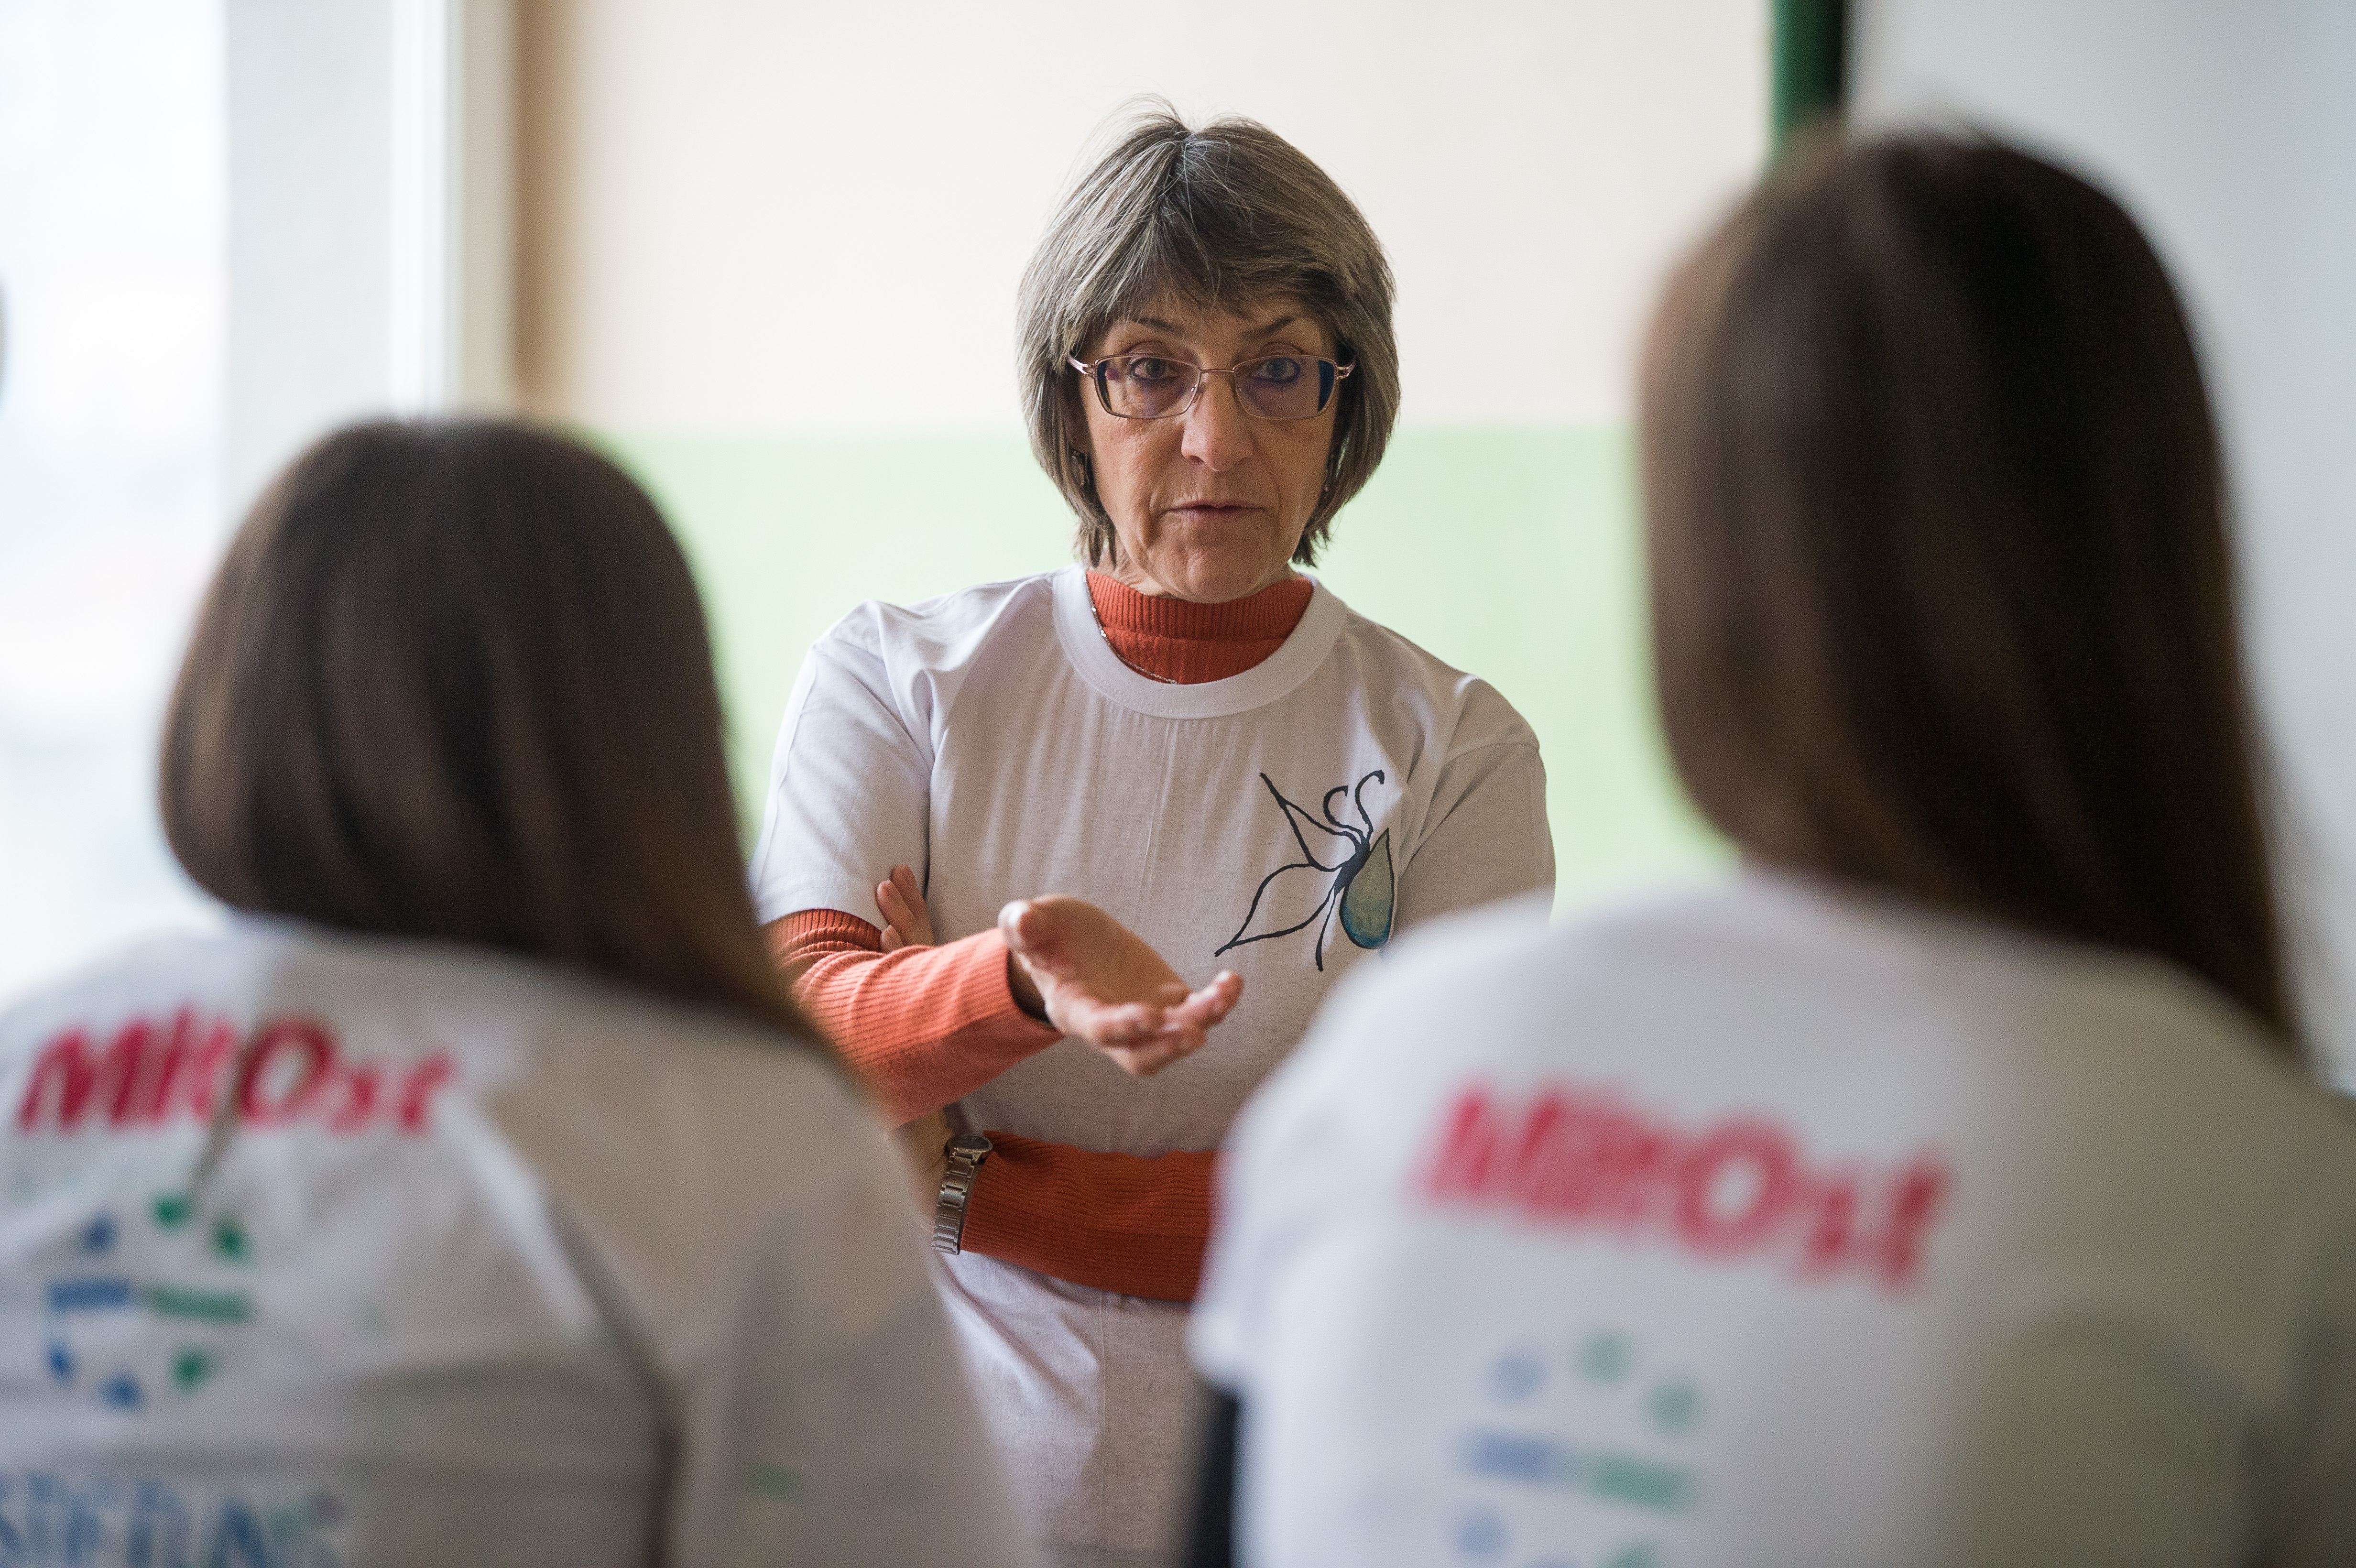 """Katya Brankova, teacher, discuss with her students in their classroom at the Secondary school """"Brothers Peter and Ivan Kanazirevi"""" in the town of Razlog on December 4, 2020. NIKOLAY DOYCHINOV for AufRuhr"""